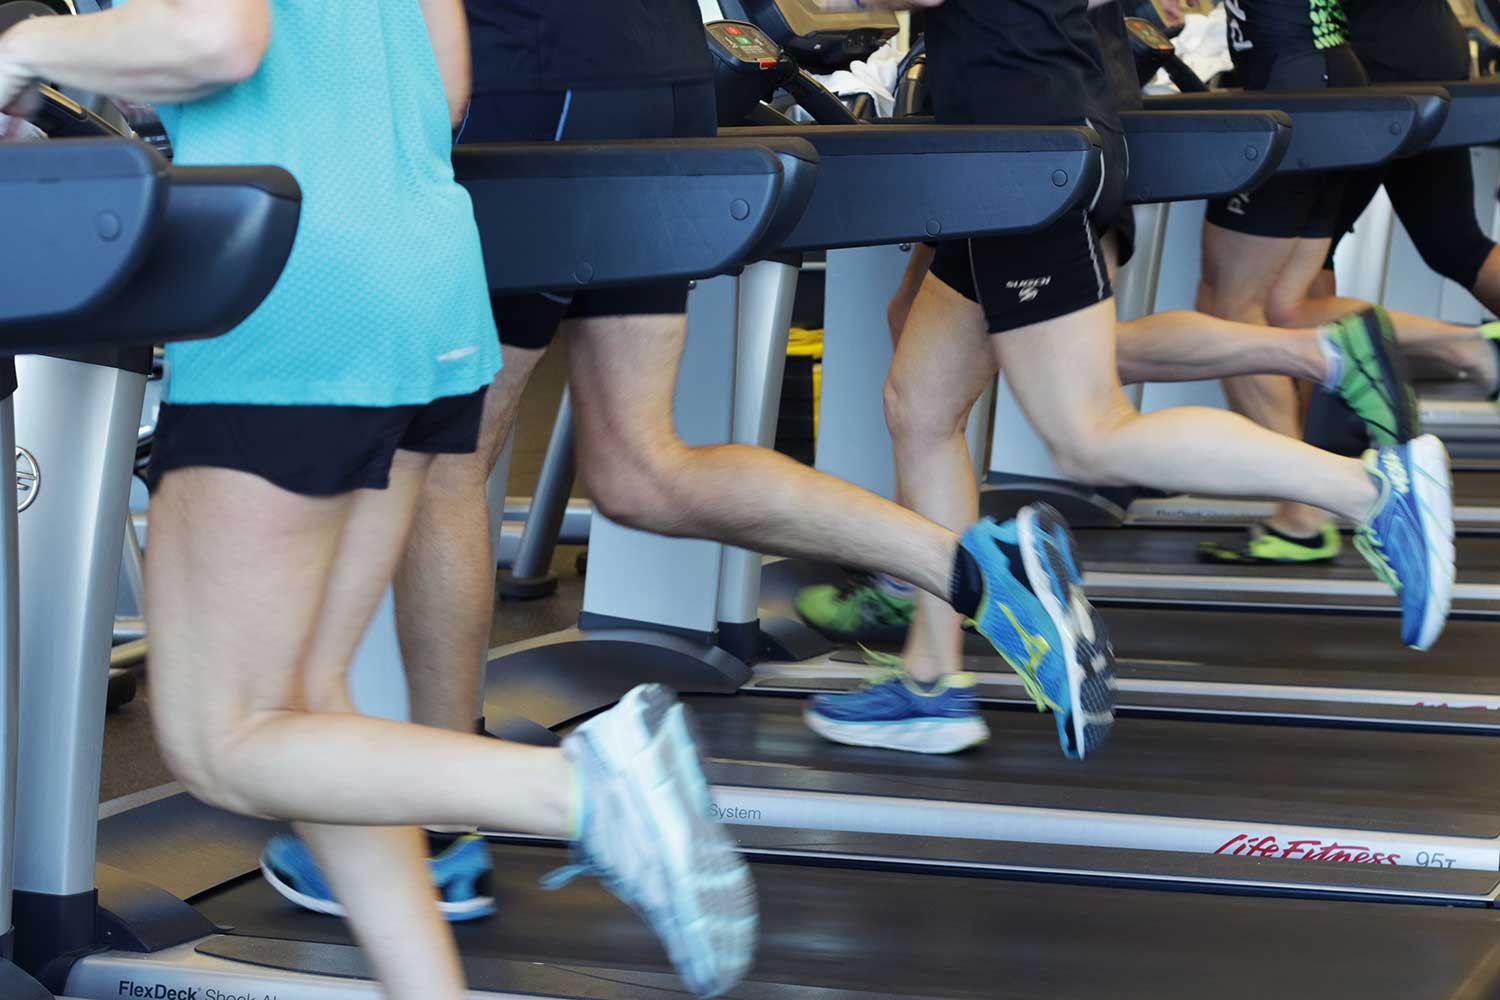 Group of people running on treadmills.